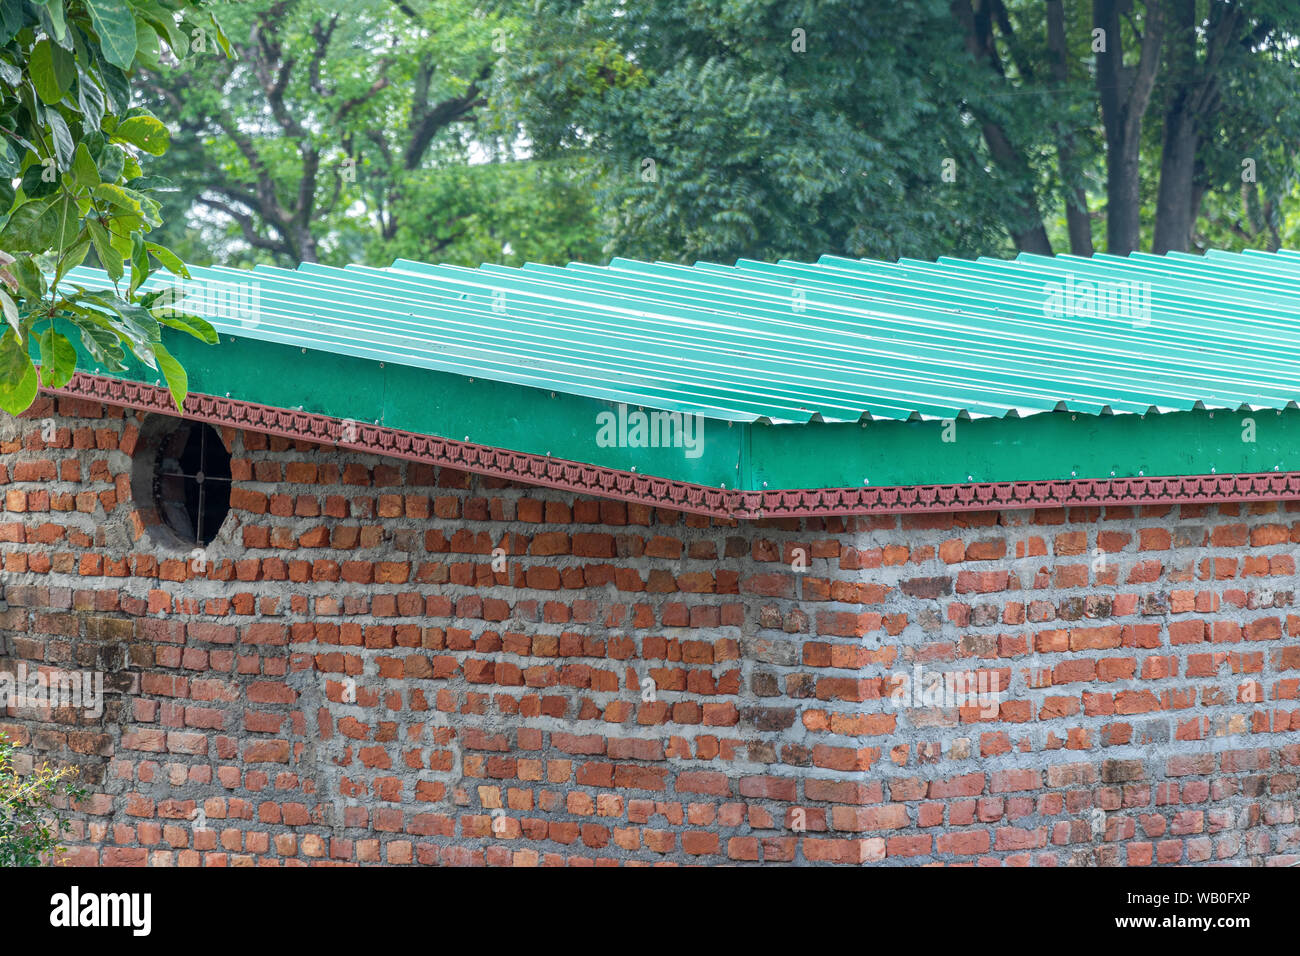 Metal Sheet Roofing High Resolution Stock Photography And Images Alamy